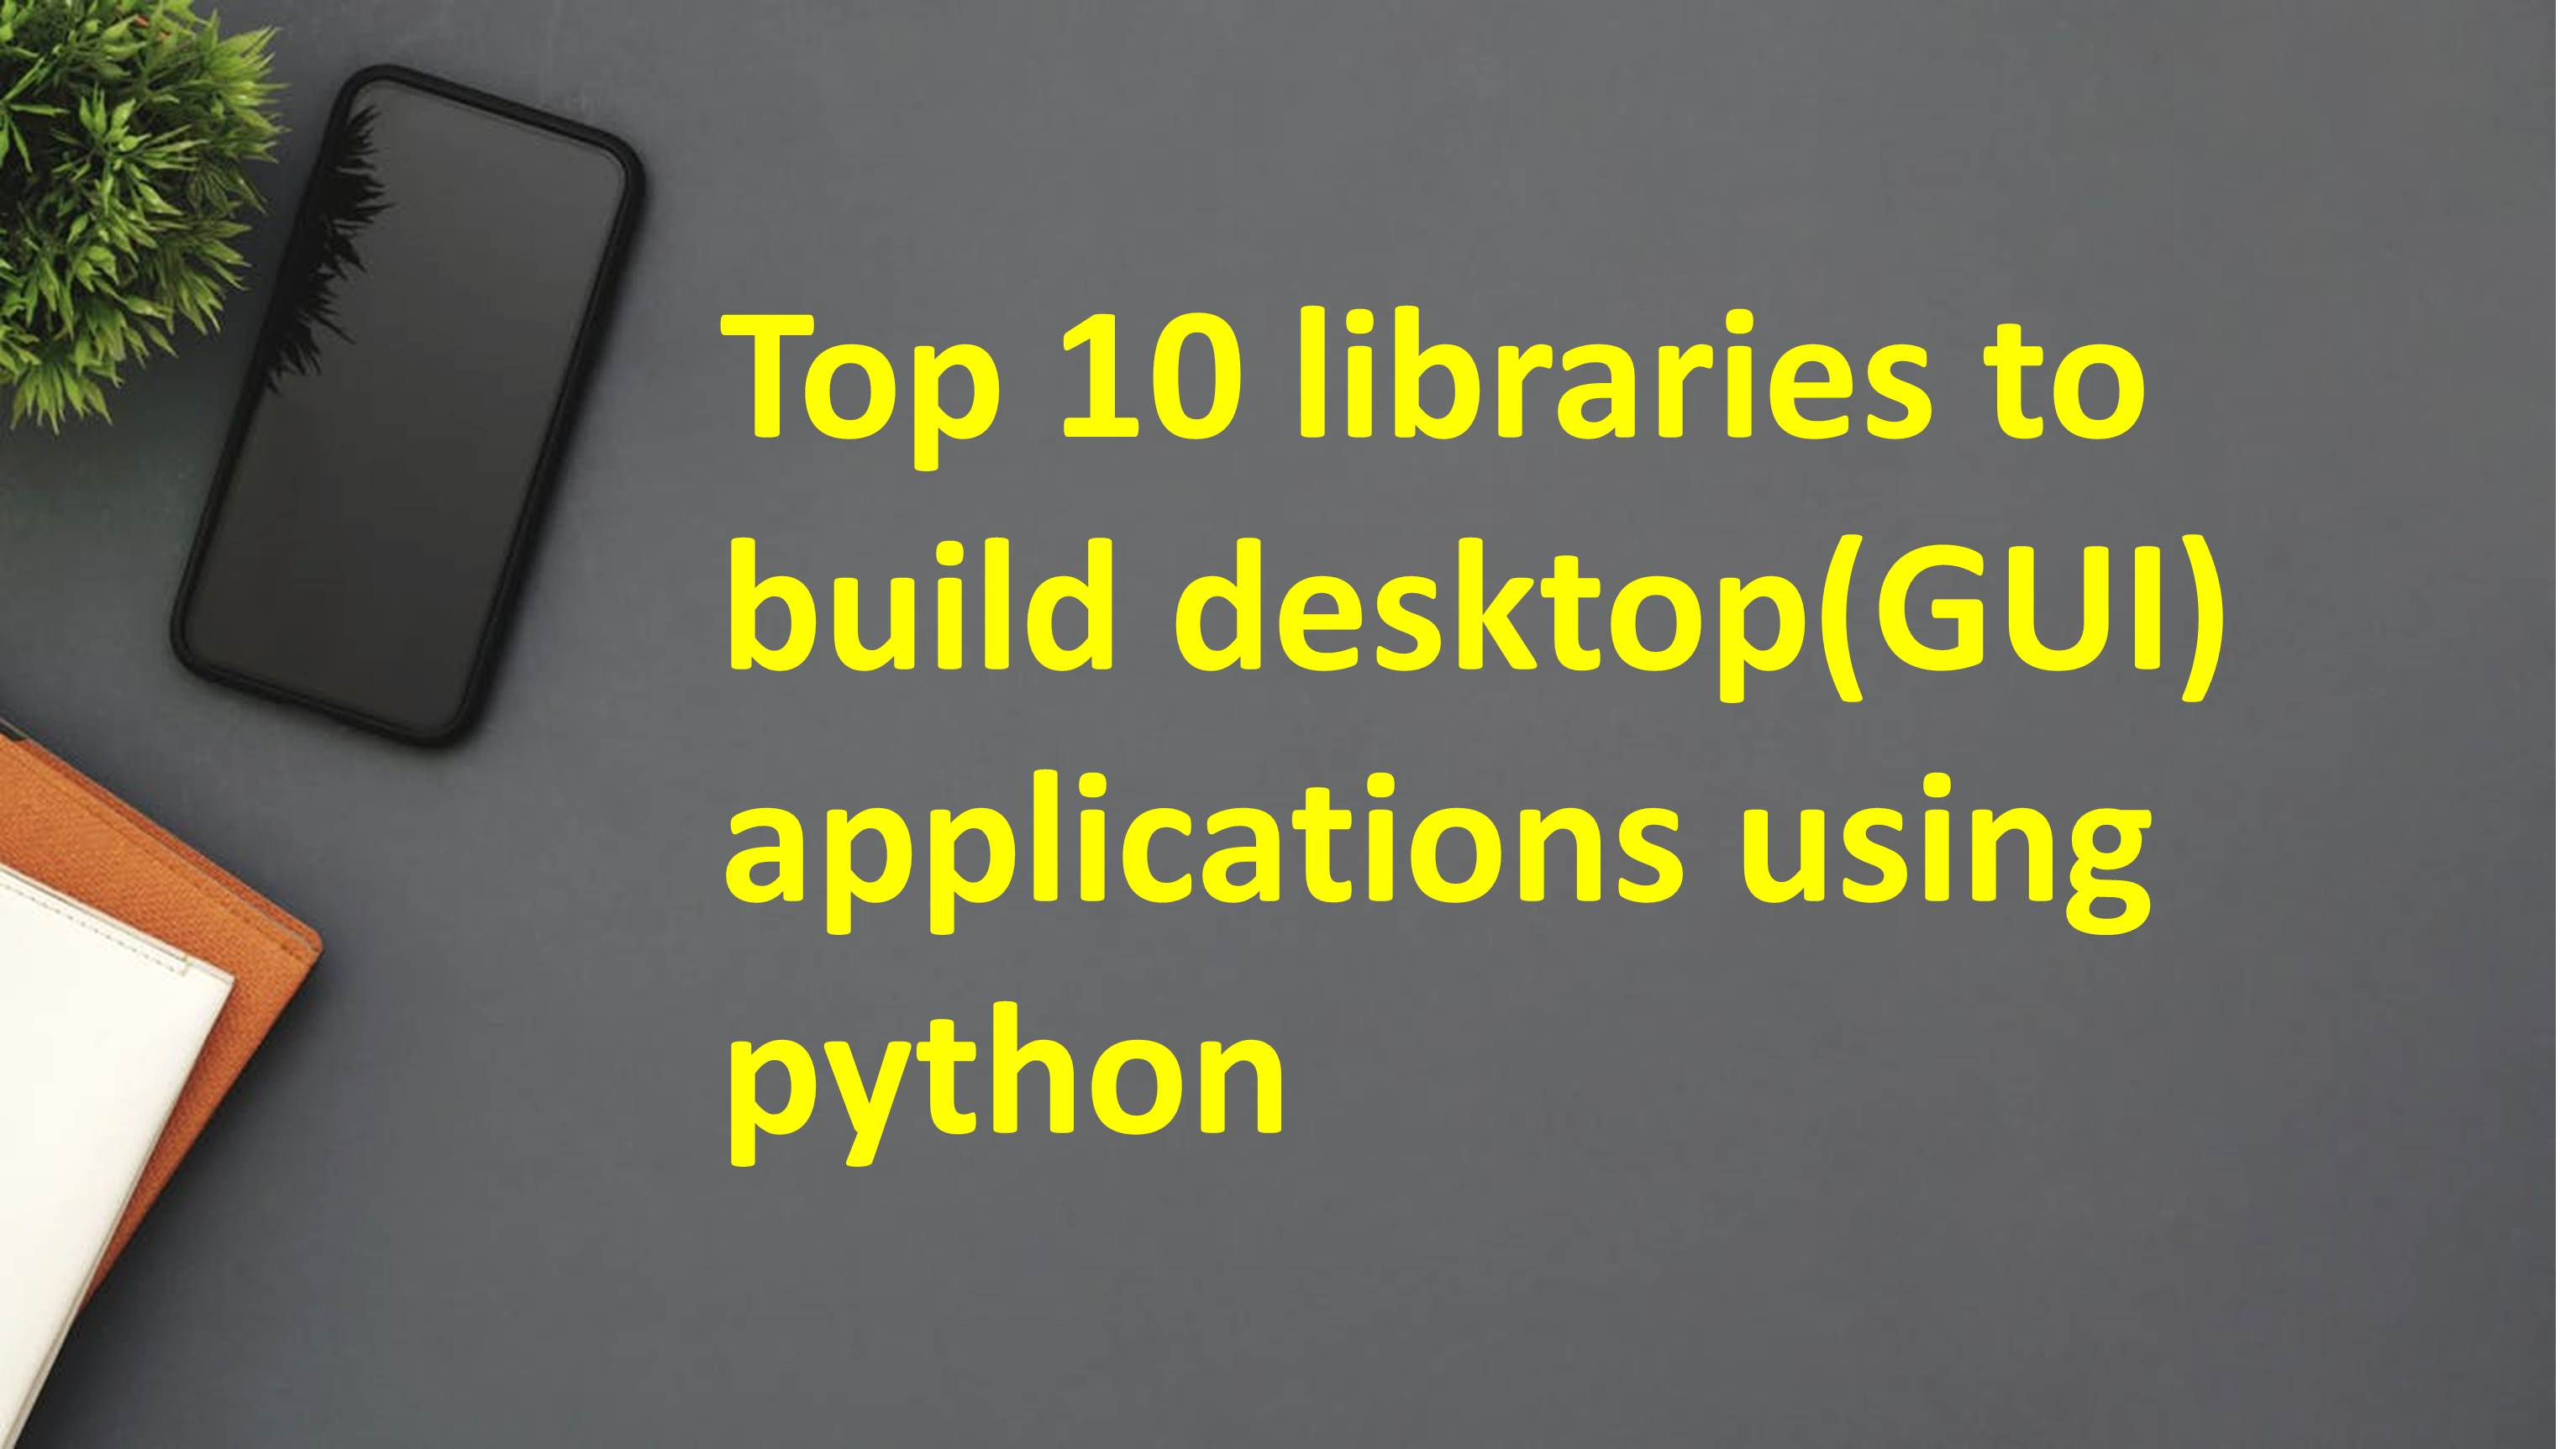 Top 10 libraries to build desktop(GUI) applications using python